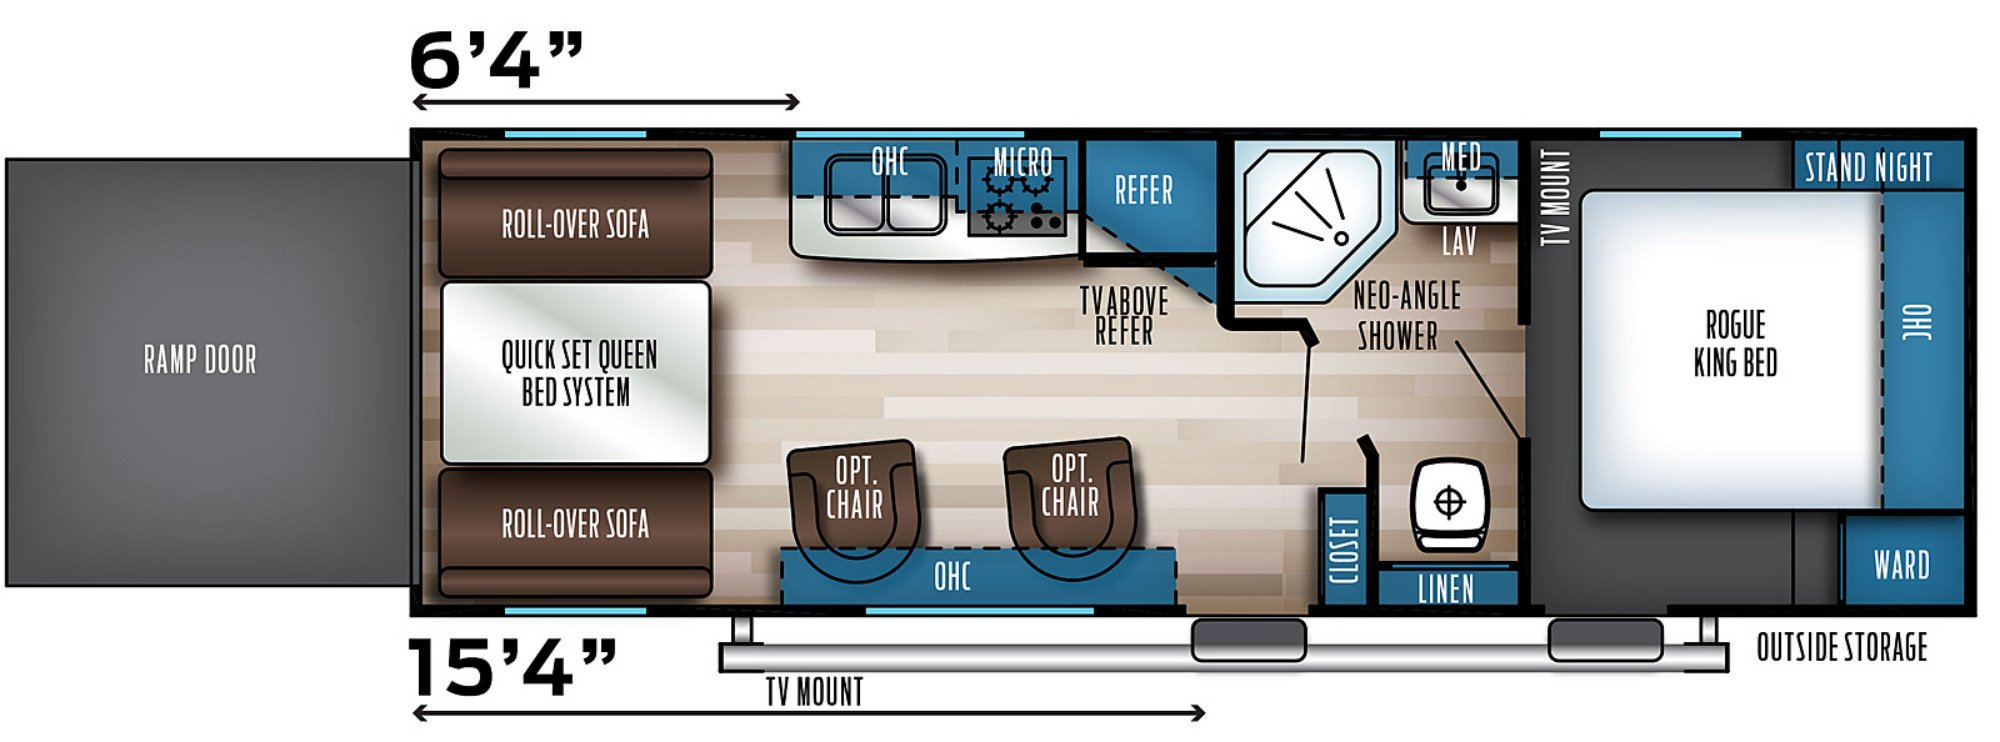 Floor Plan image for '2021 FOREST RIVER ROGUE 25V'